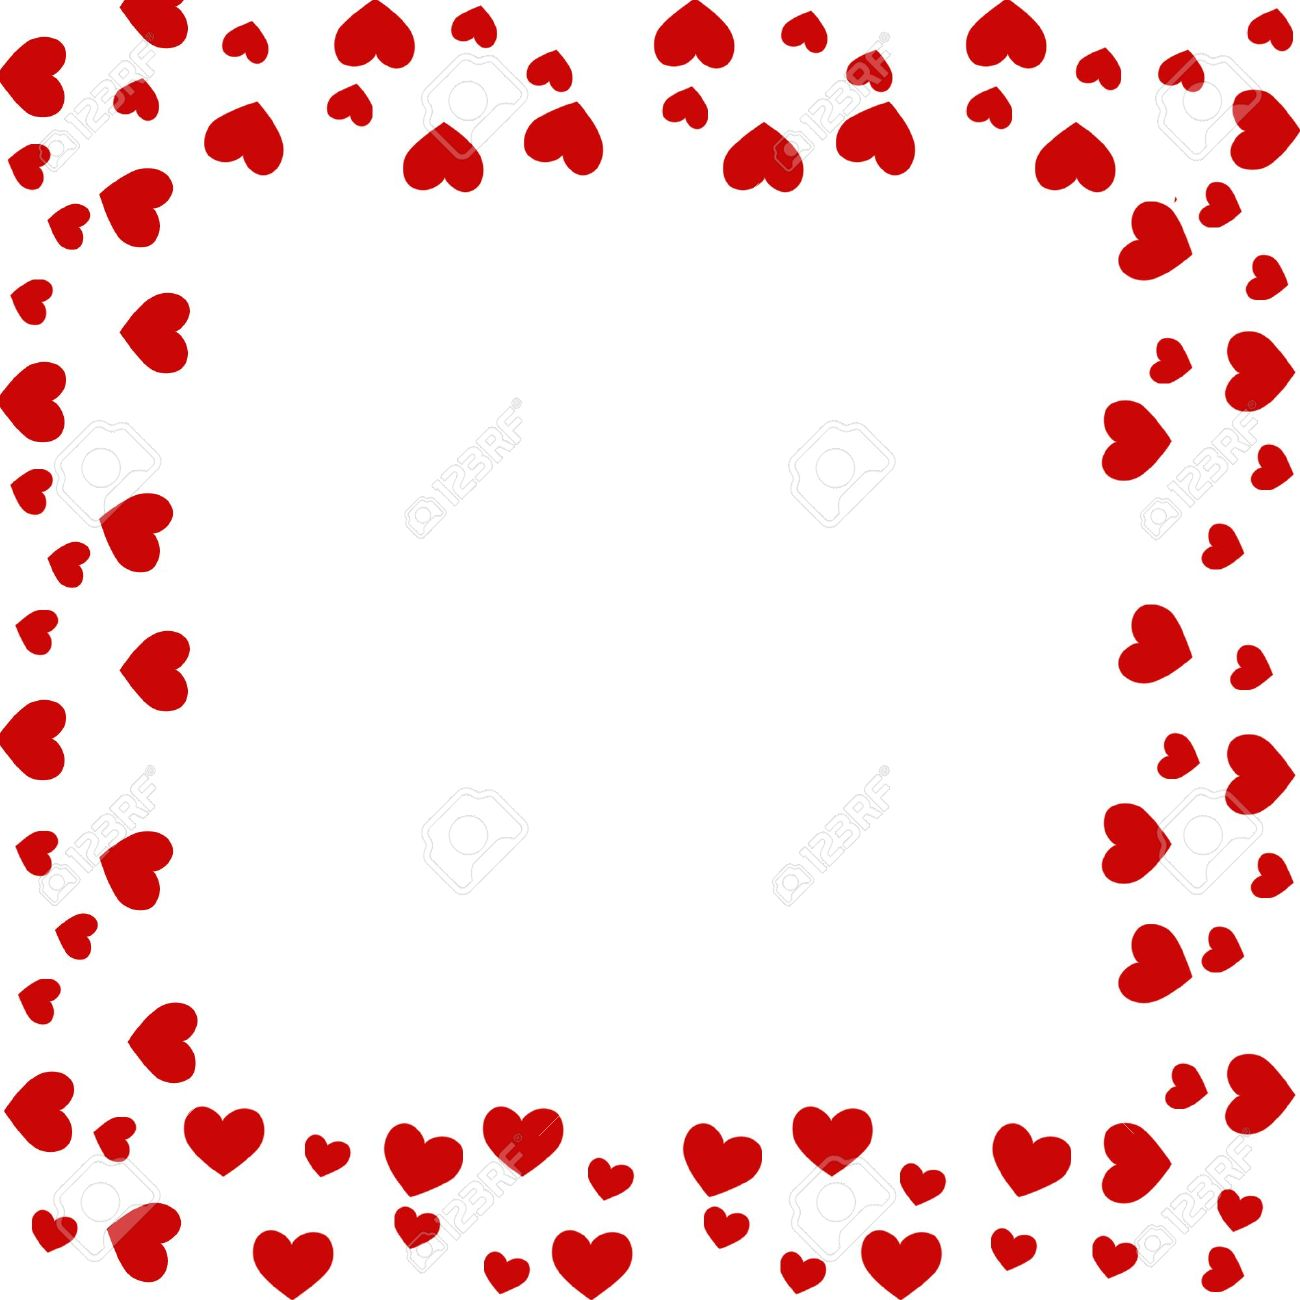 1300x1300 Heart Border Stock Photo, Picture And Royalty Free Image. Image